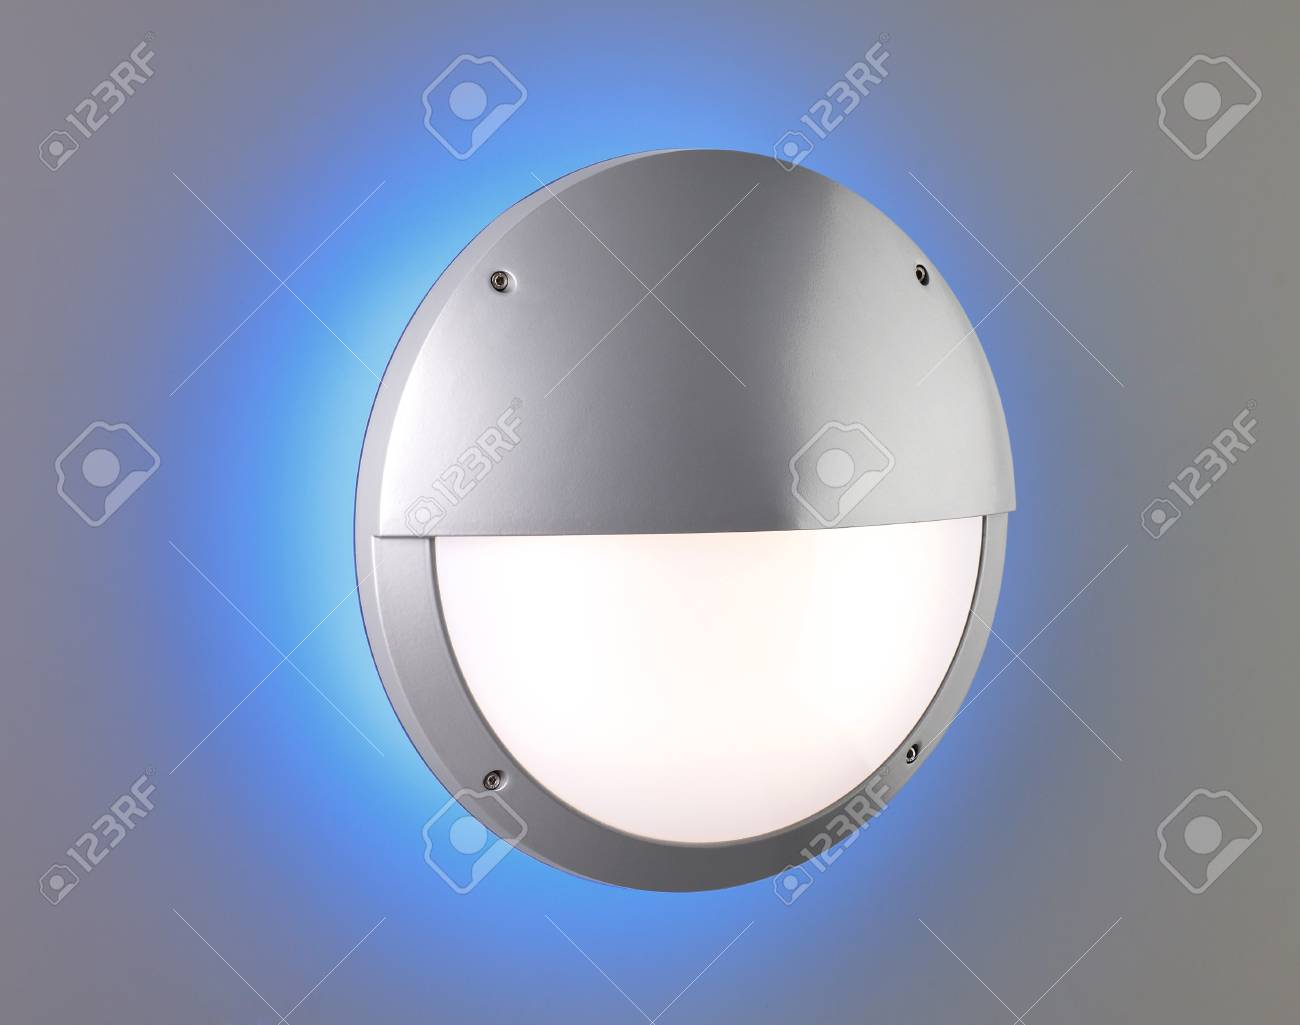 Pedestrian luminance lighting Stock Photo - 16700486